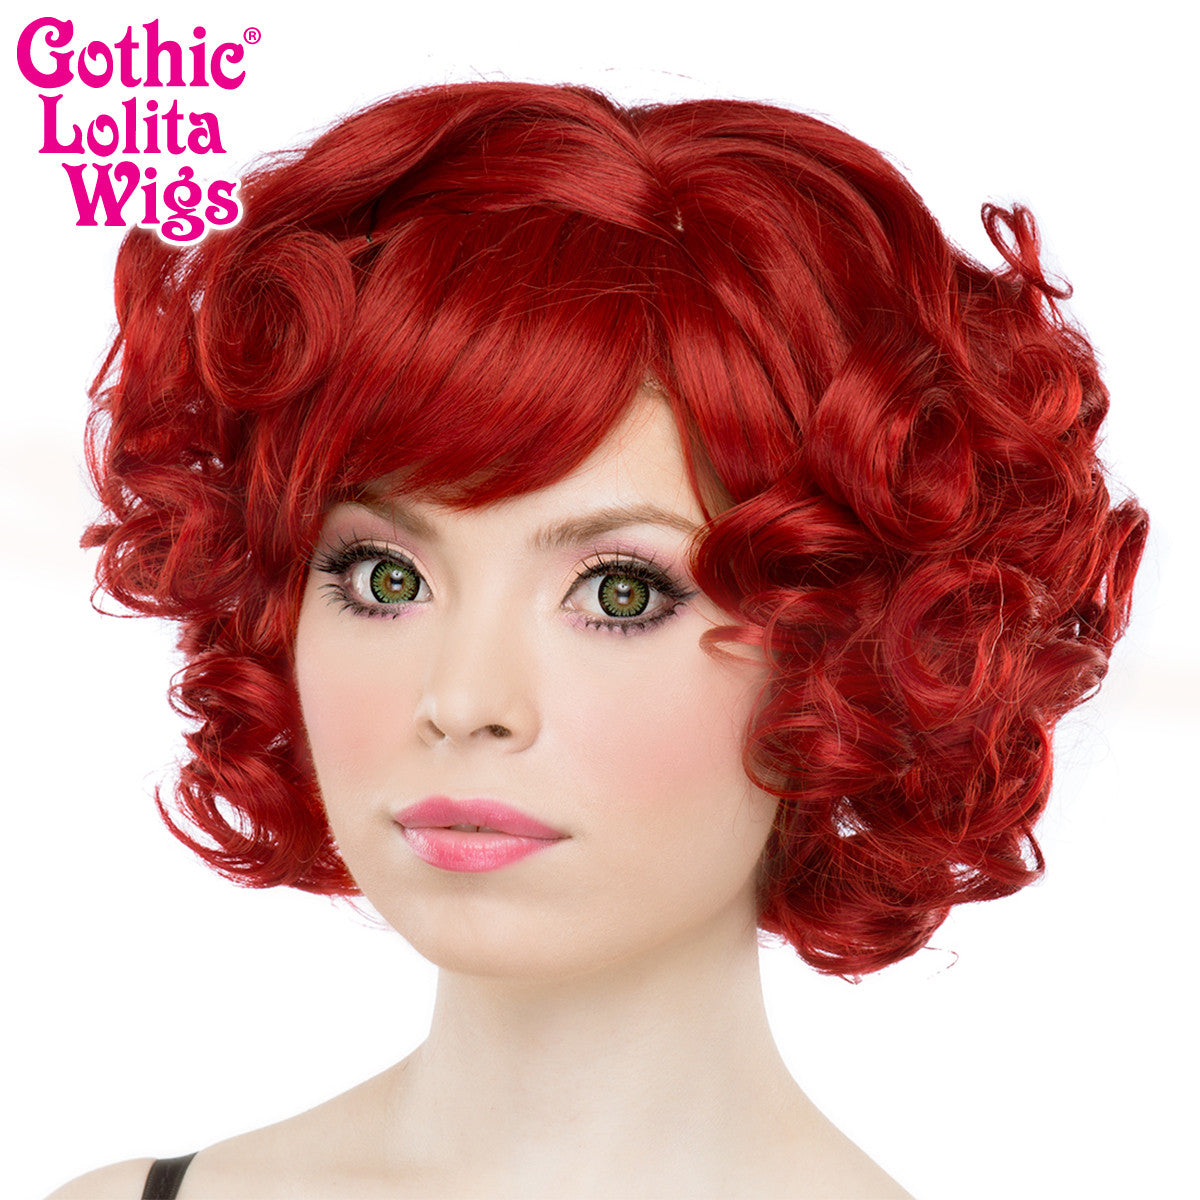 Gothic Lolita Wigs 174 Curly Bob Crimson Red Dolluxe 174